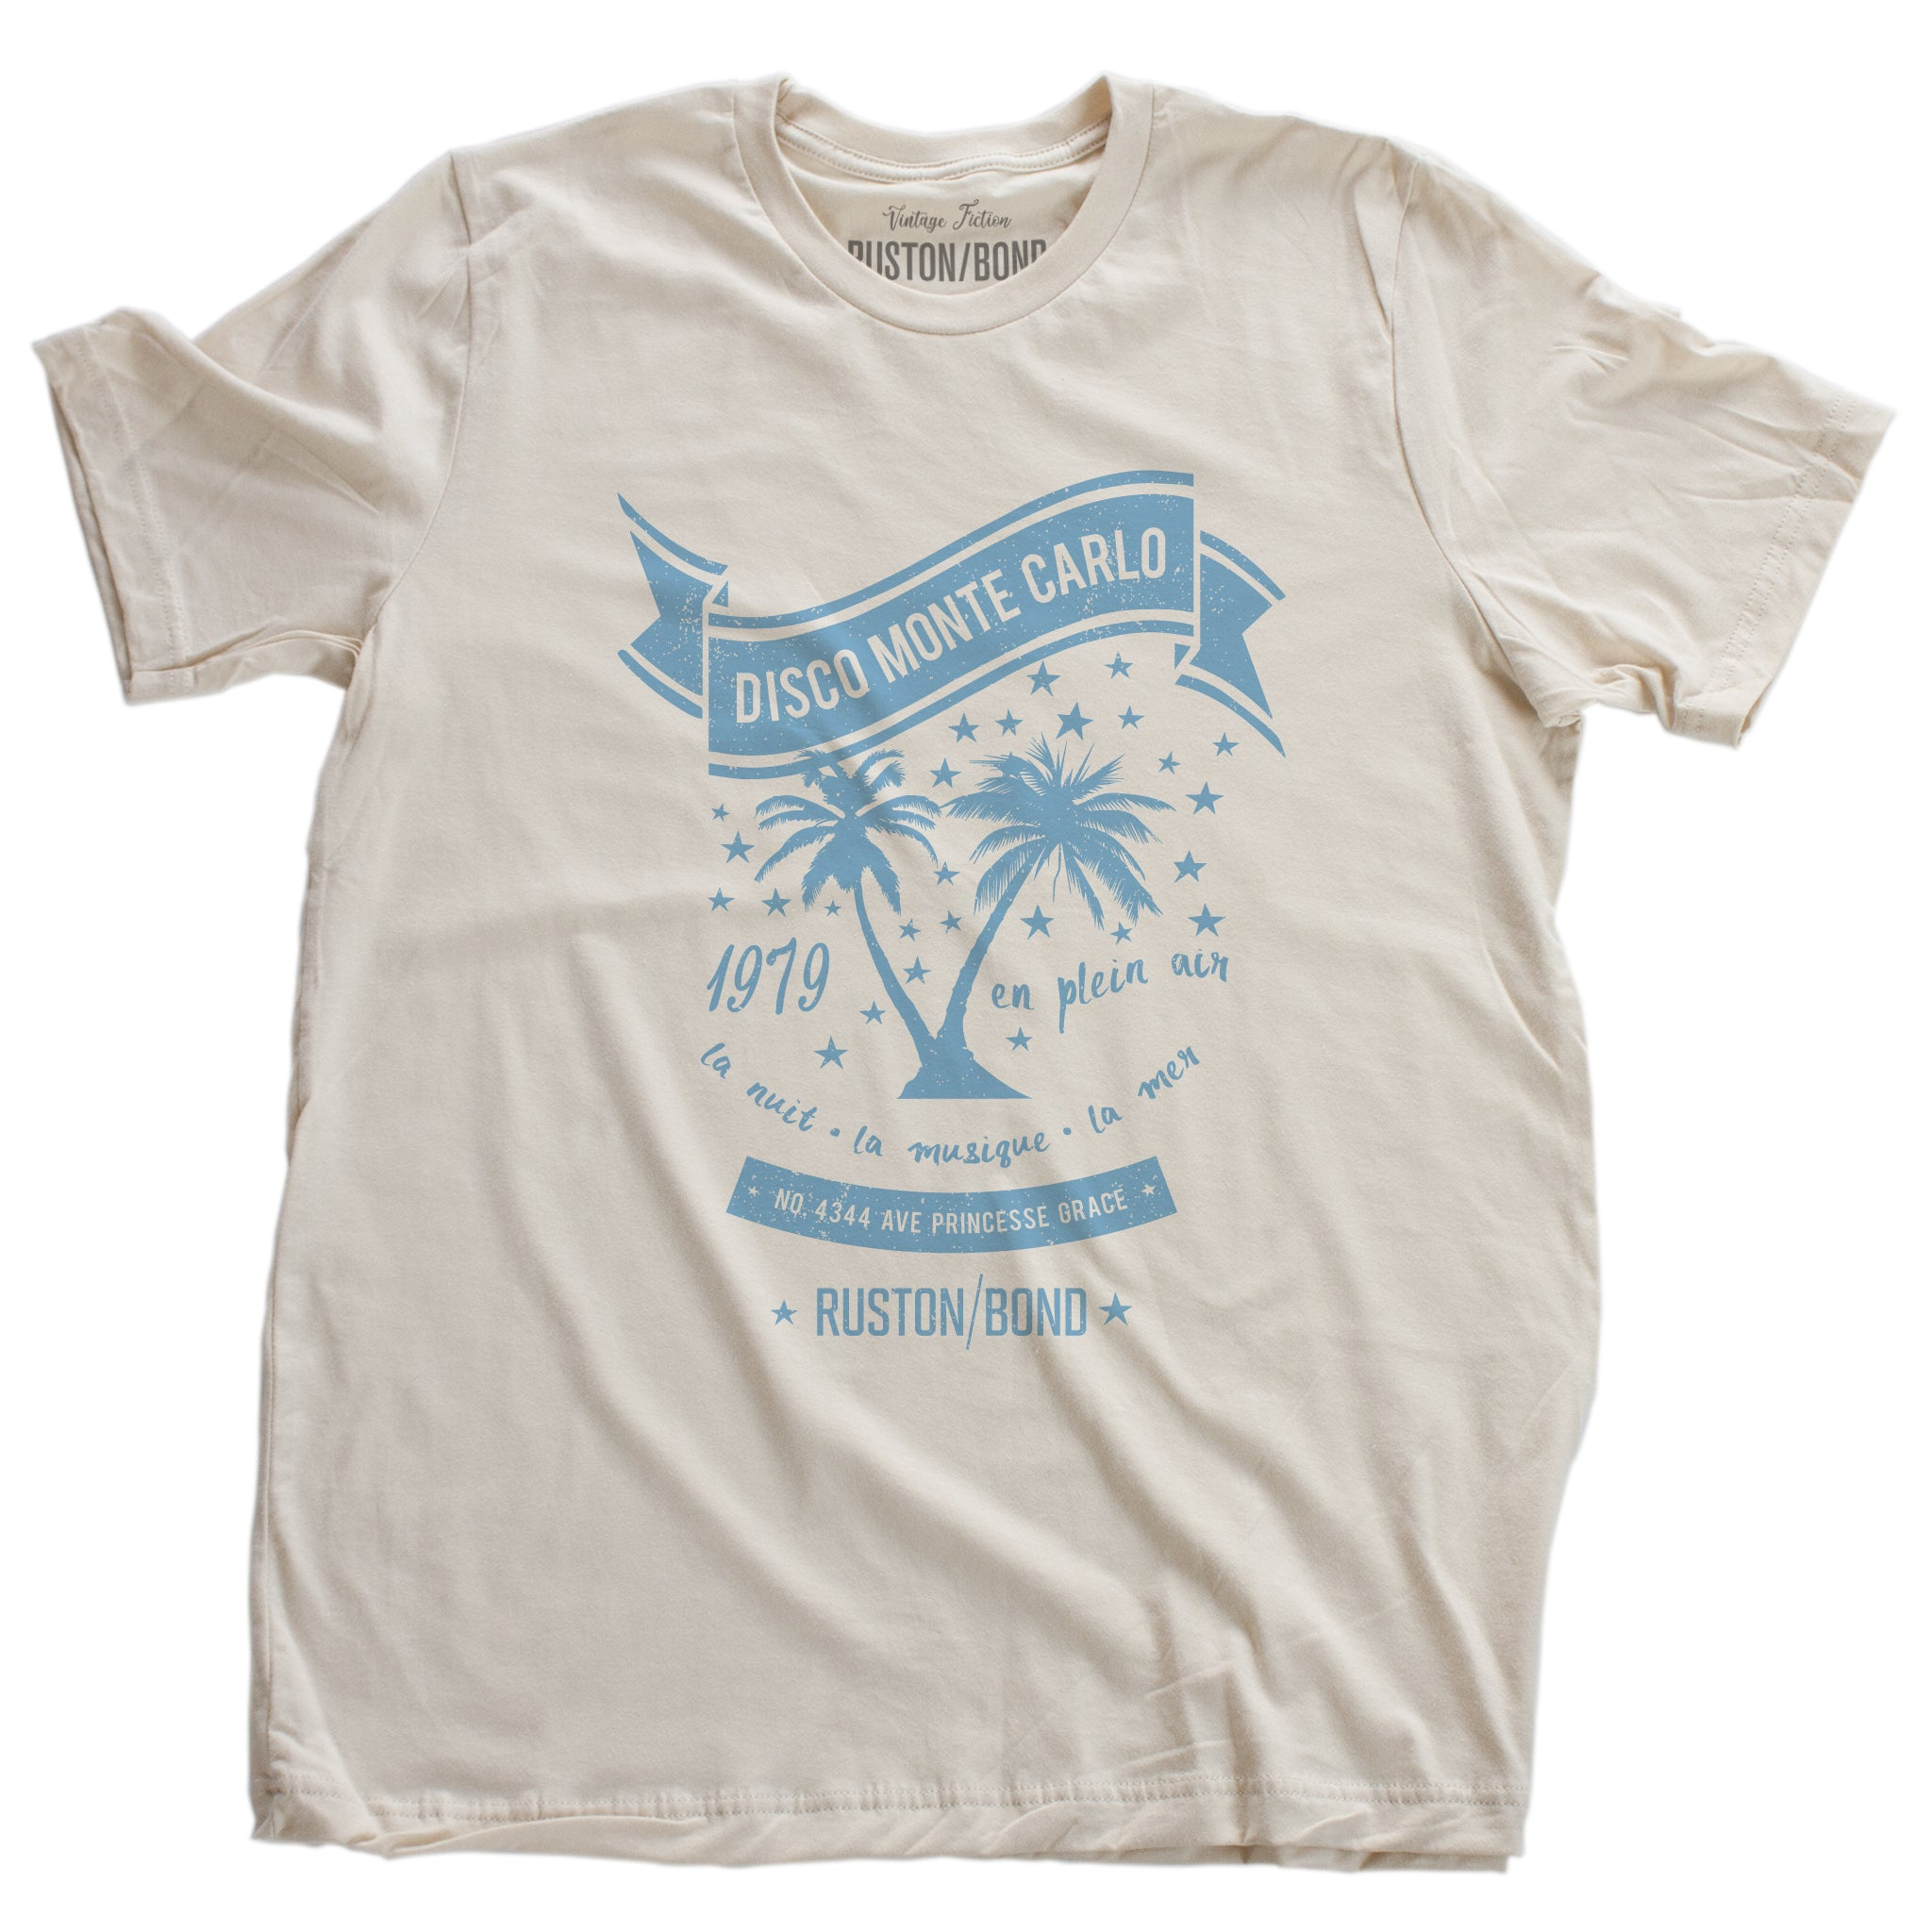 A retro, vintage-inspired t-shirt in Soft Cream, featuring palm trees against a starry sky, promoting a fictional Monte Carlo discotheque from the 1970s and 80s. By fashion brand Ruston/Bond, from wolfsaint.net